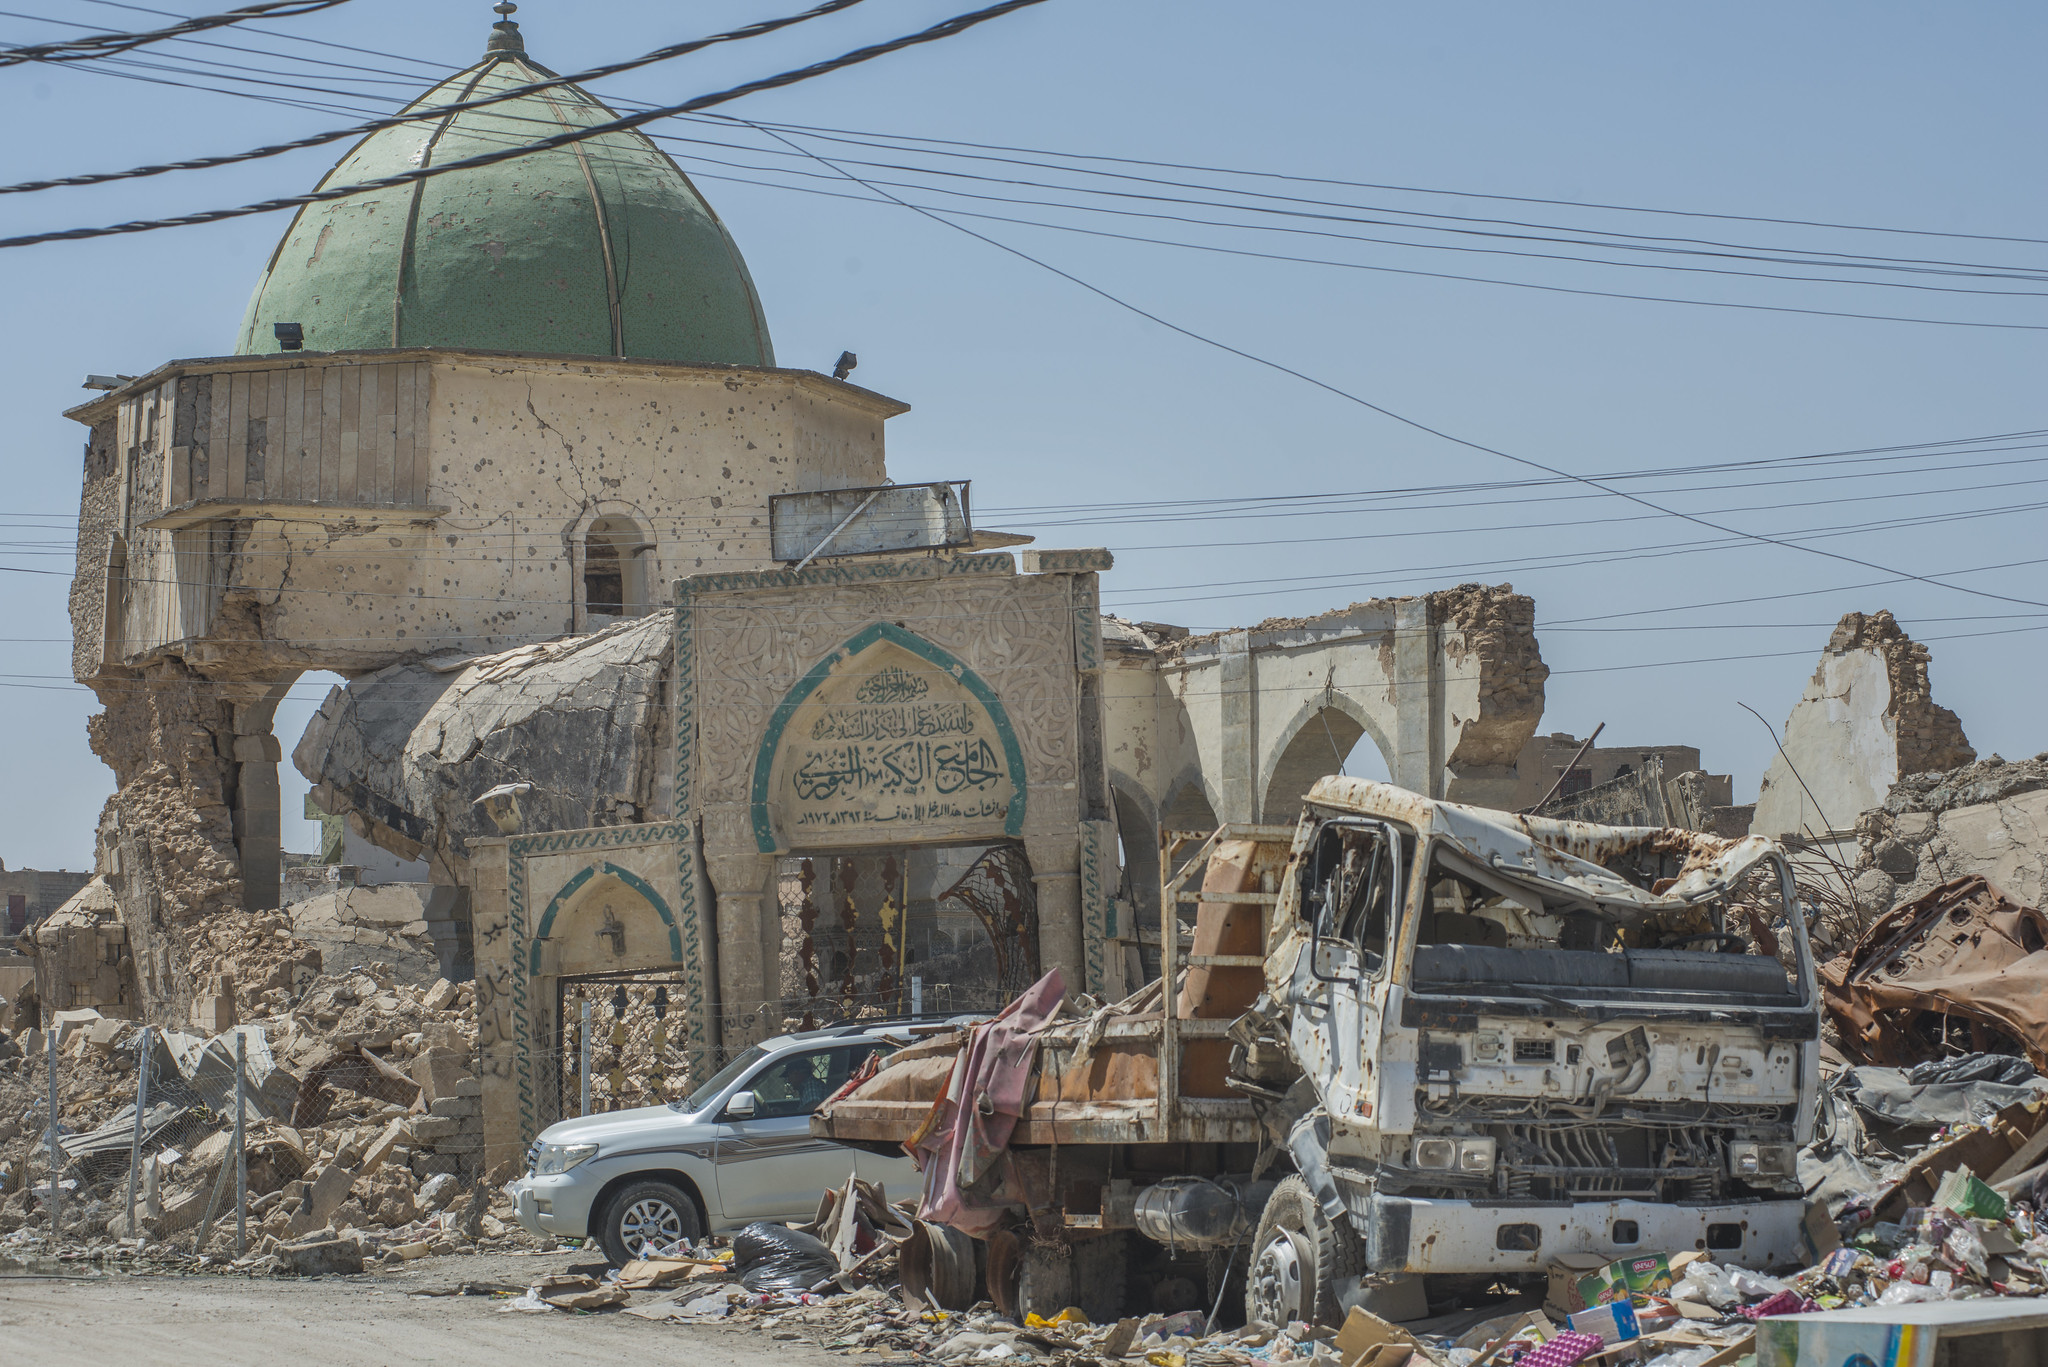 The ruins of the Great Mosque of al-Nuri in Mosul's Old Town